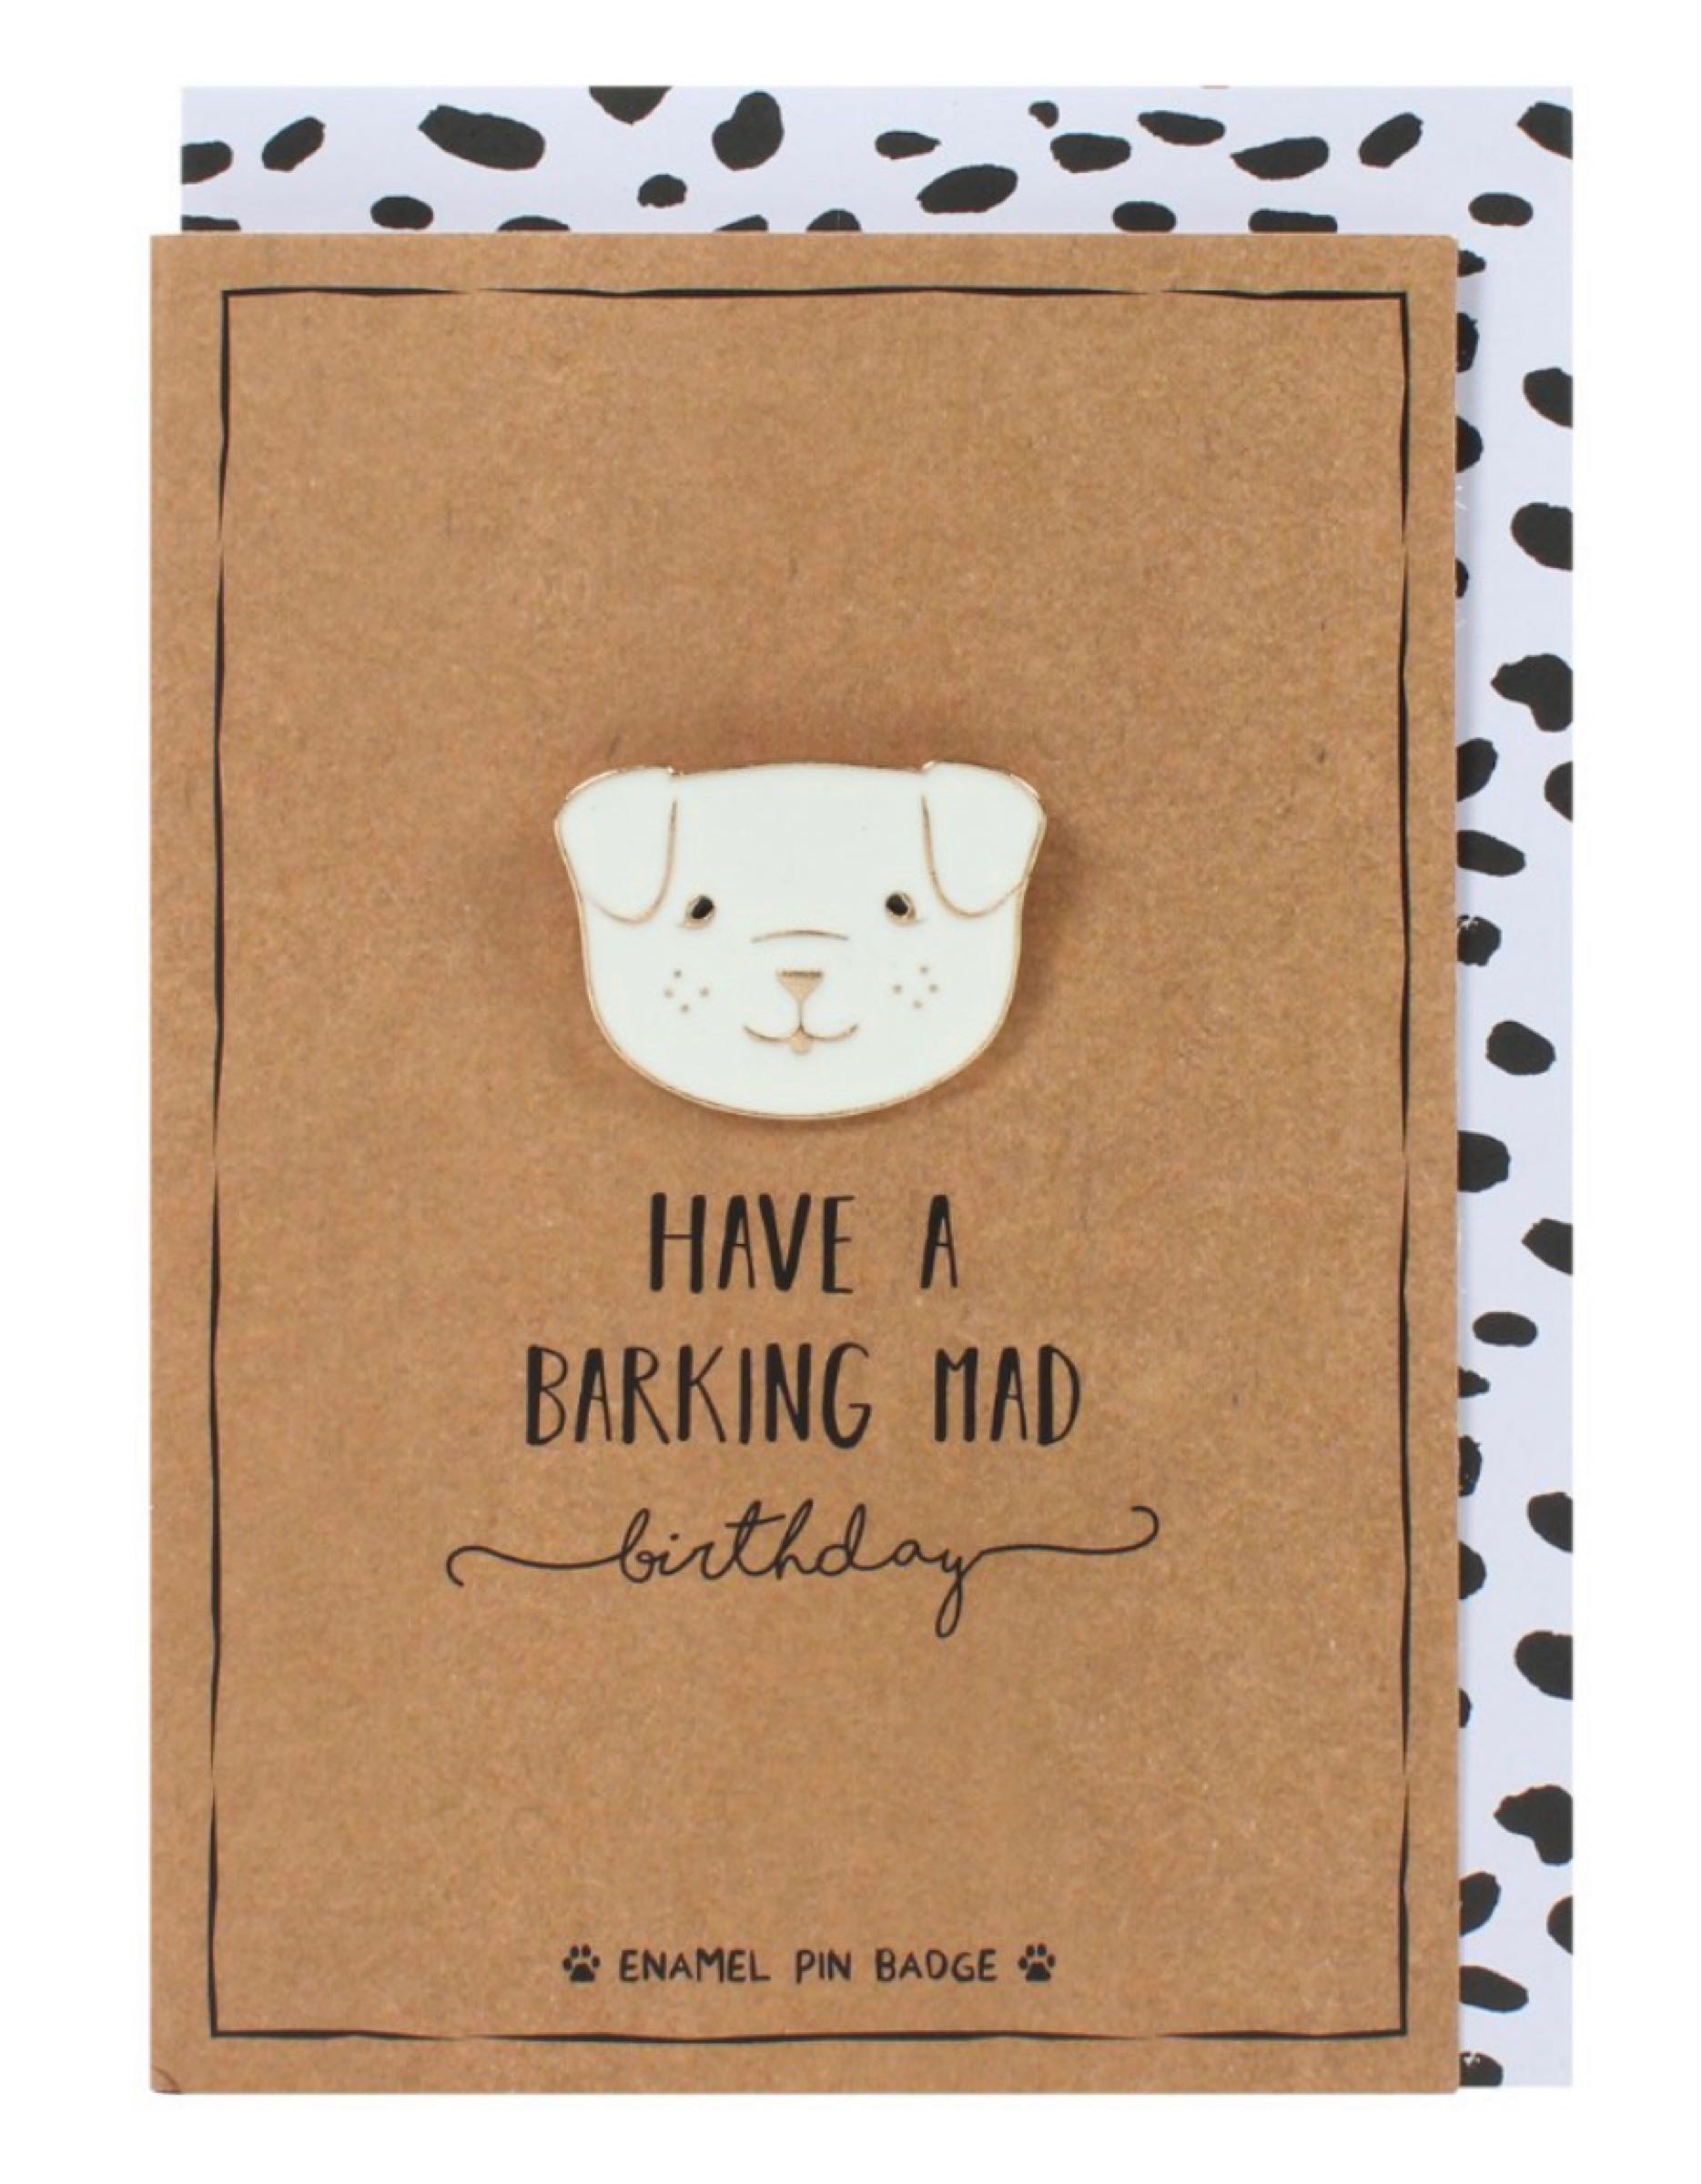 Have a Barking Mad Birthday Card with enamel pin badge